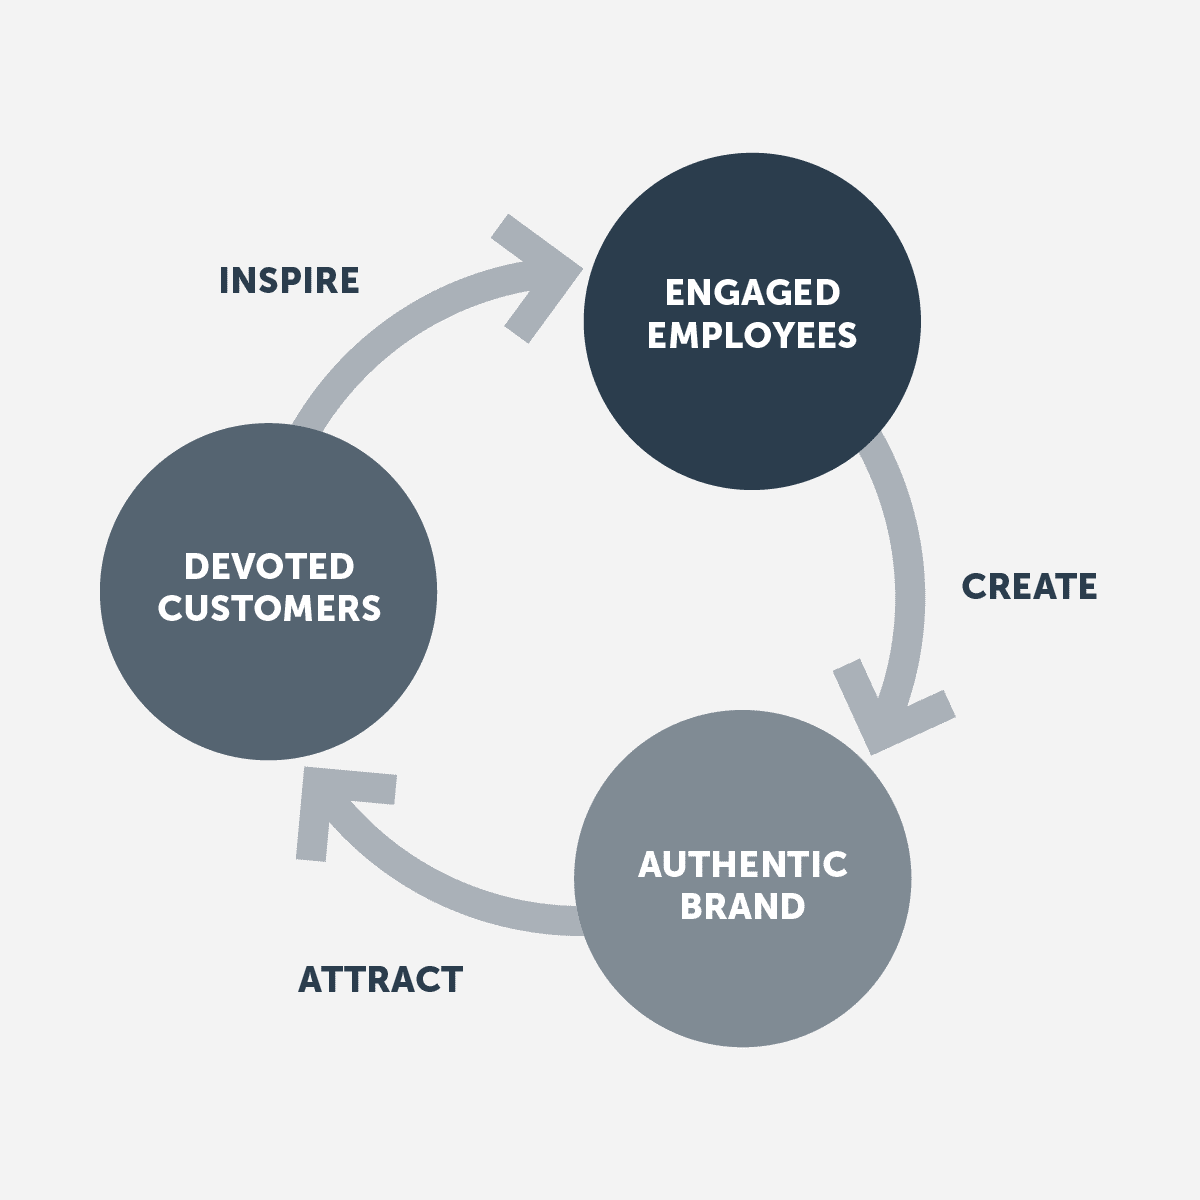 Employees bring a brand to life